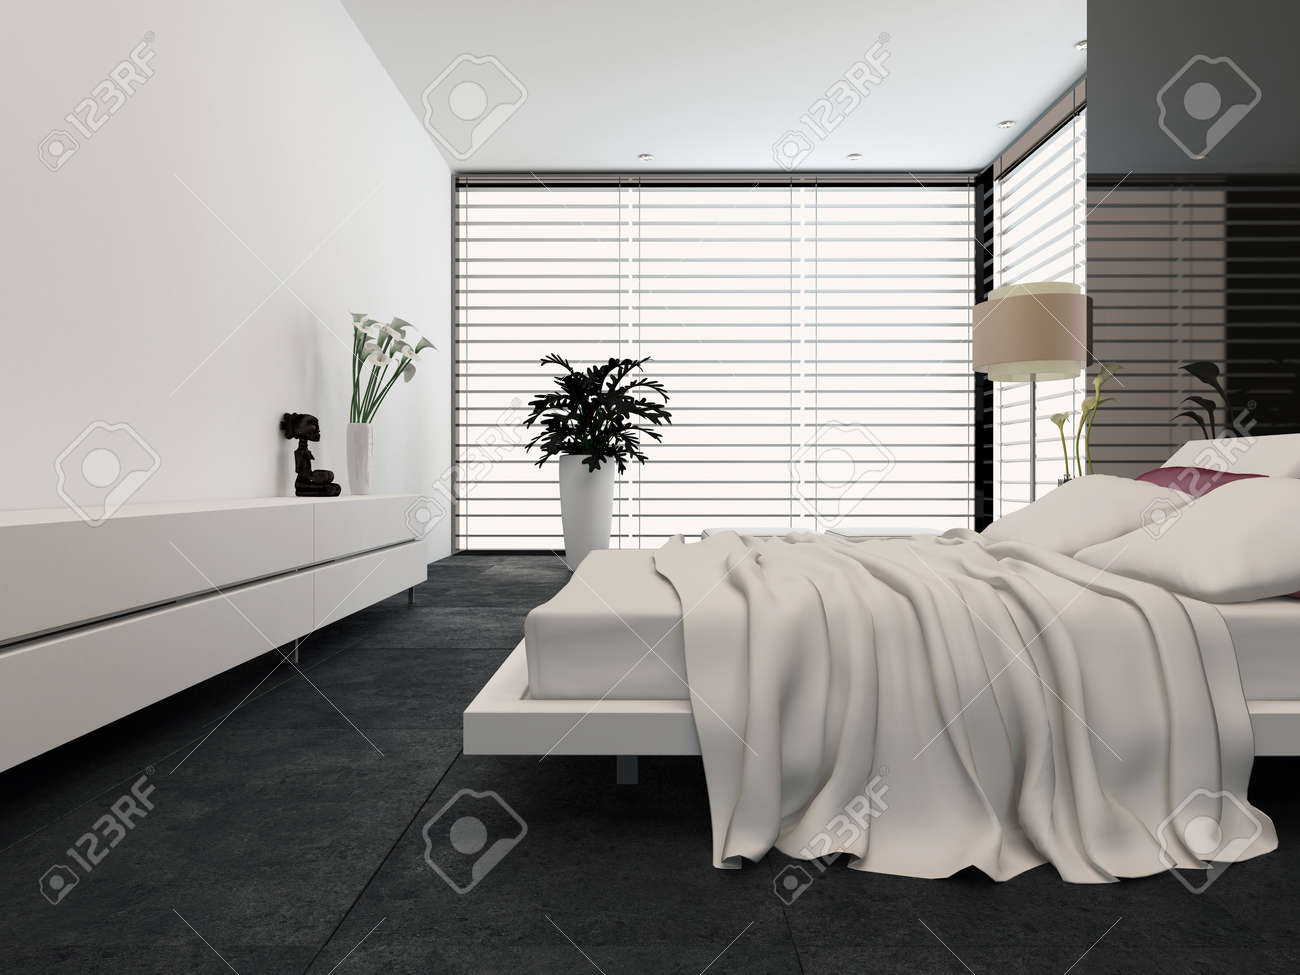 Genial Spacious Modern Bedroom With An Adjustable Double Bed, Large Wrap Around  View Window With Blinds